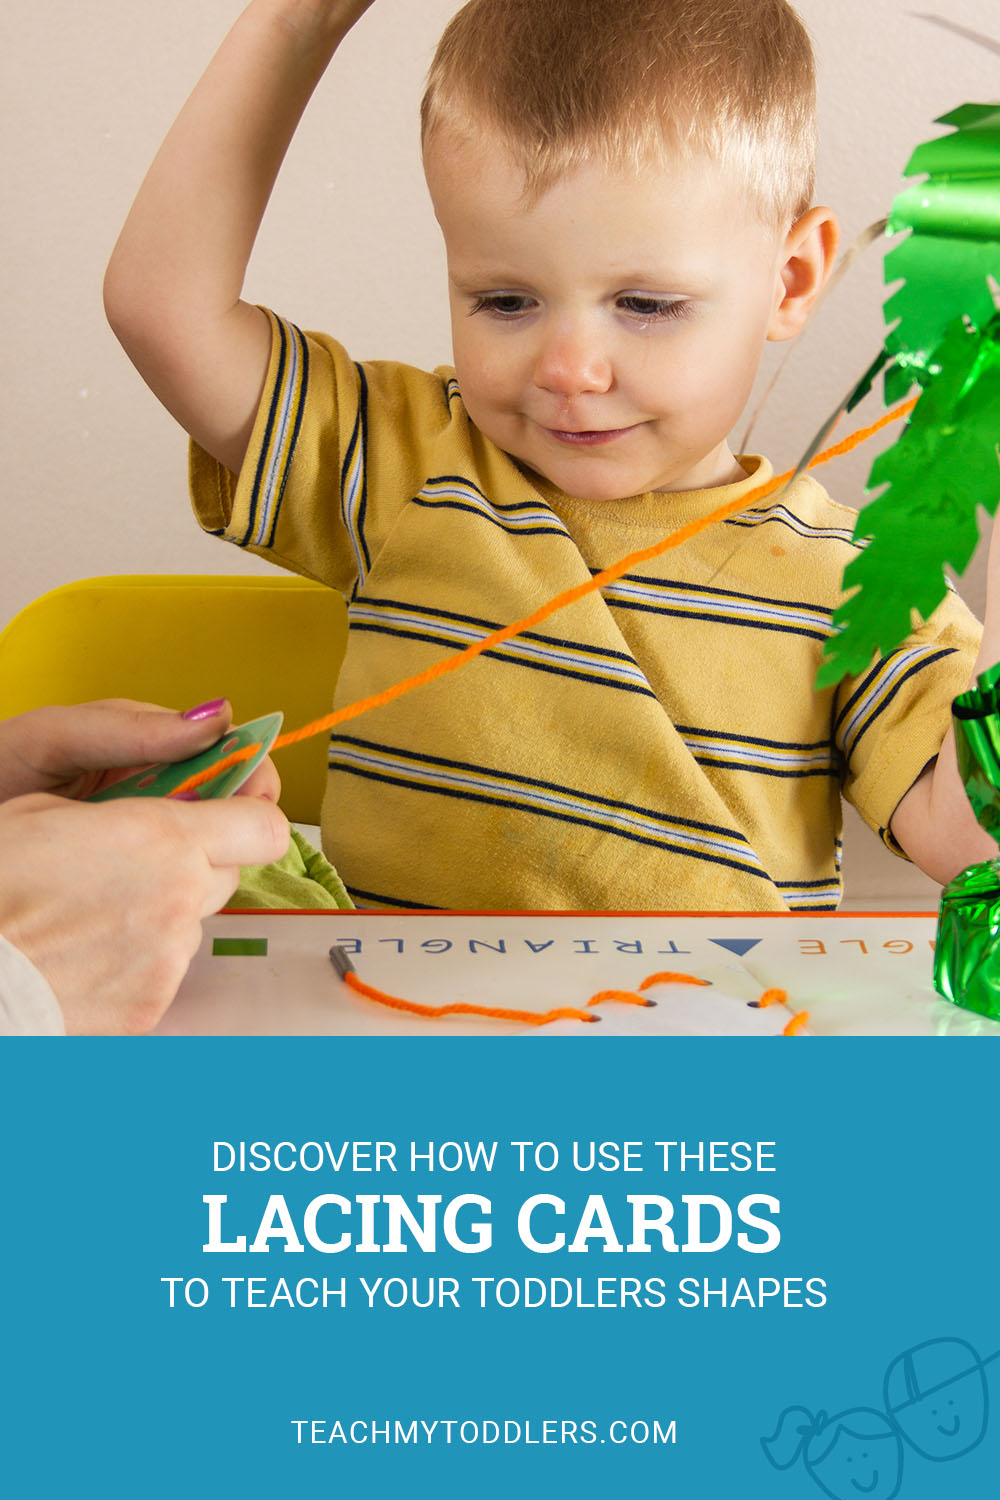 Discover how to use these lacing cards to teach toddlers shapes